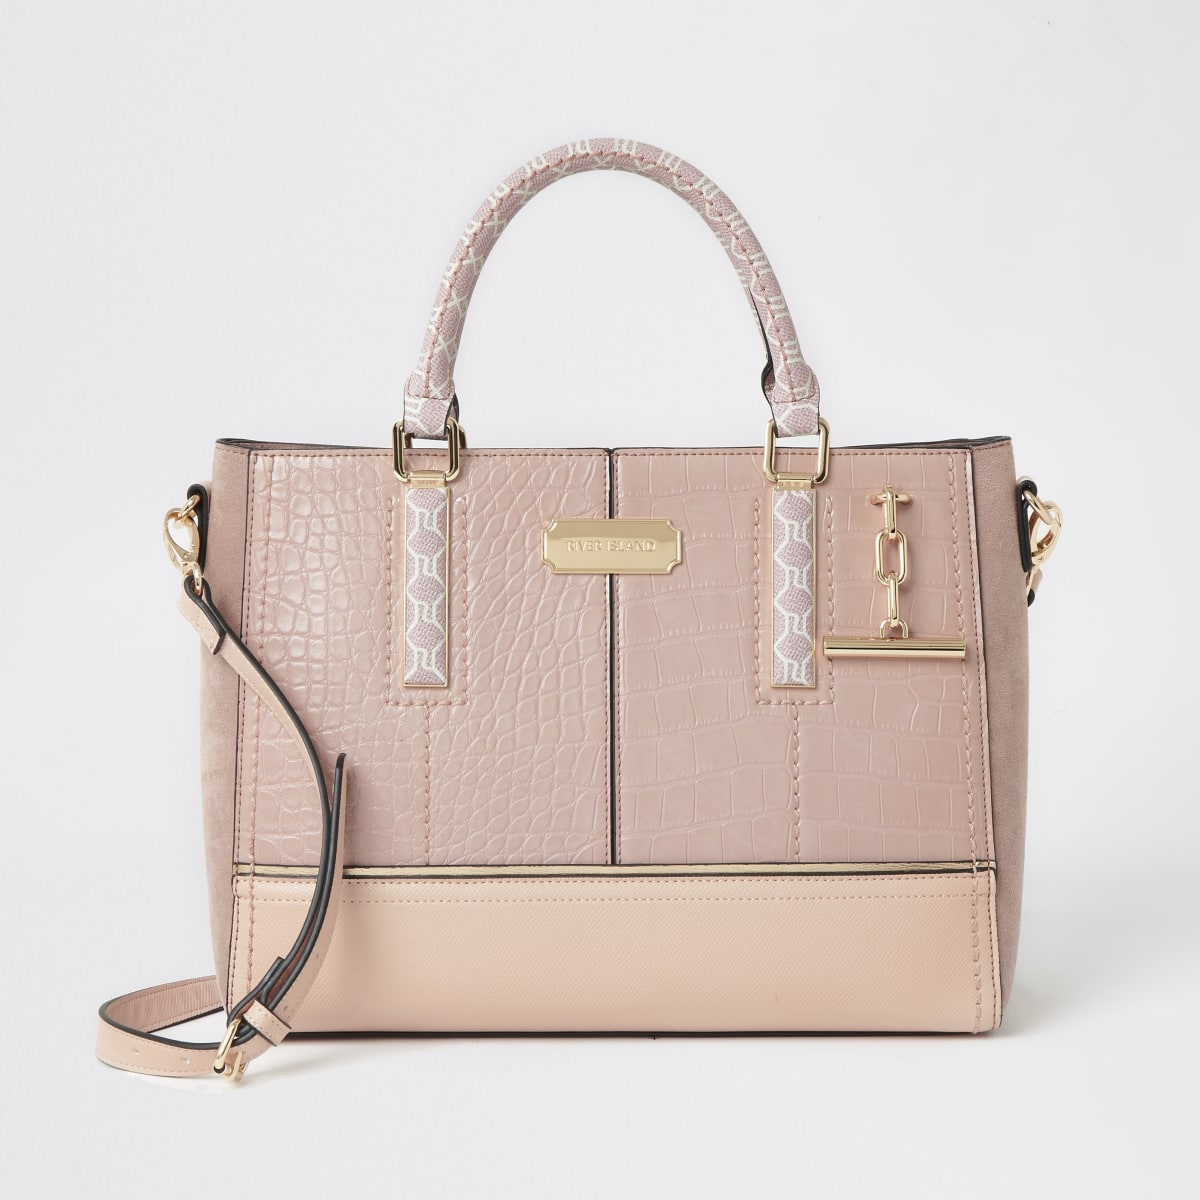 Pink croc embossed T bar chain tote bag